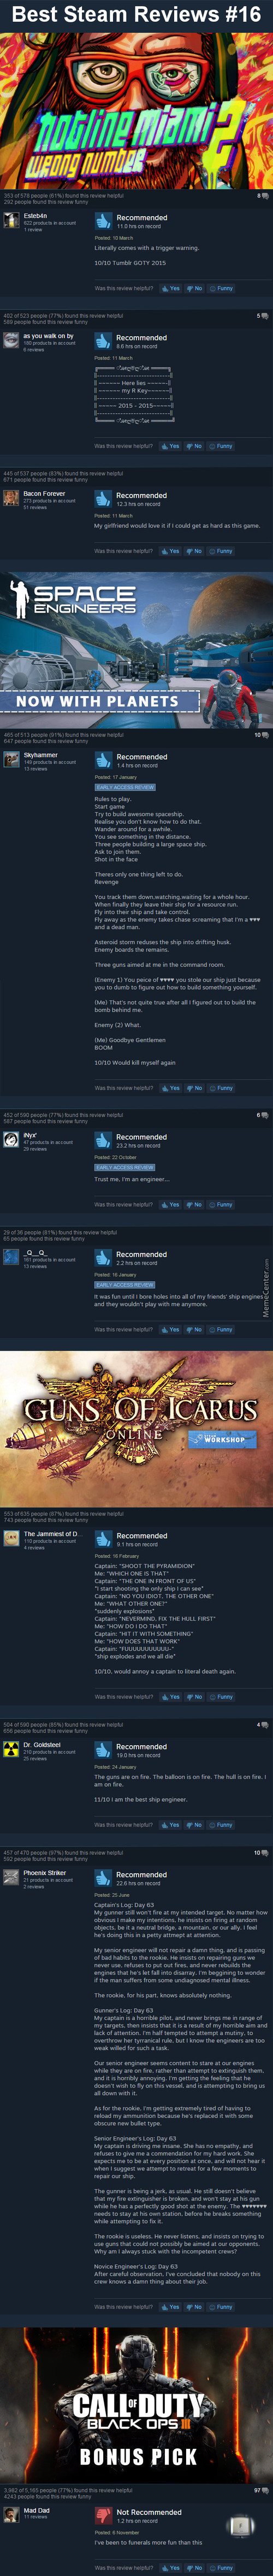 Best Steam Reviews #16 - Pay Respects